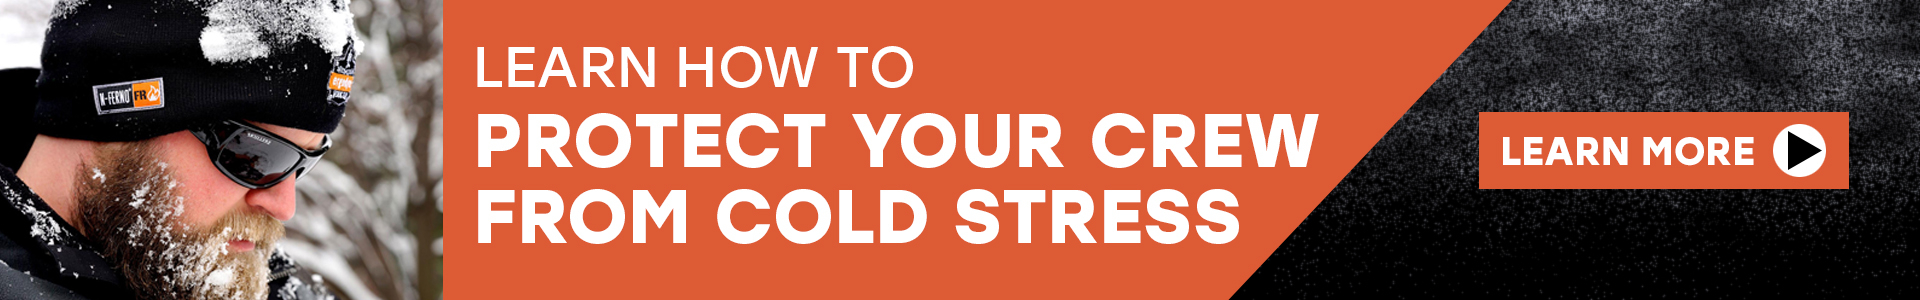 Cold Stress Banner